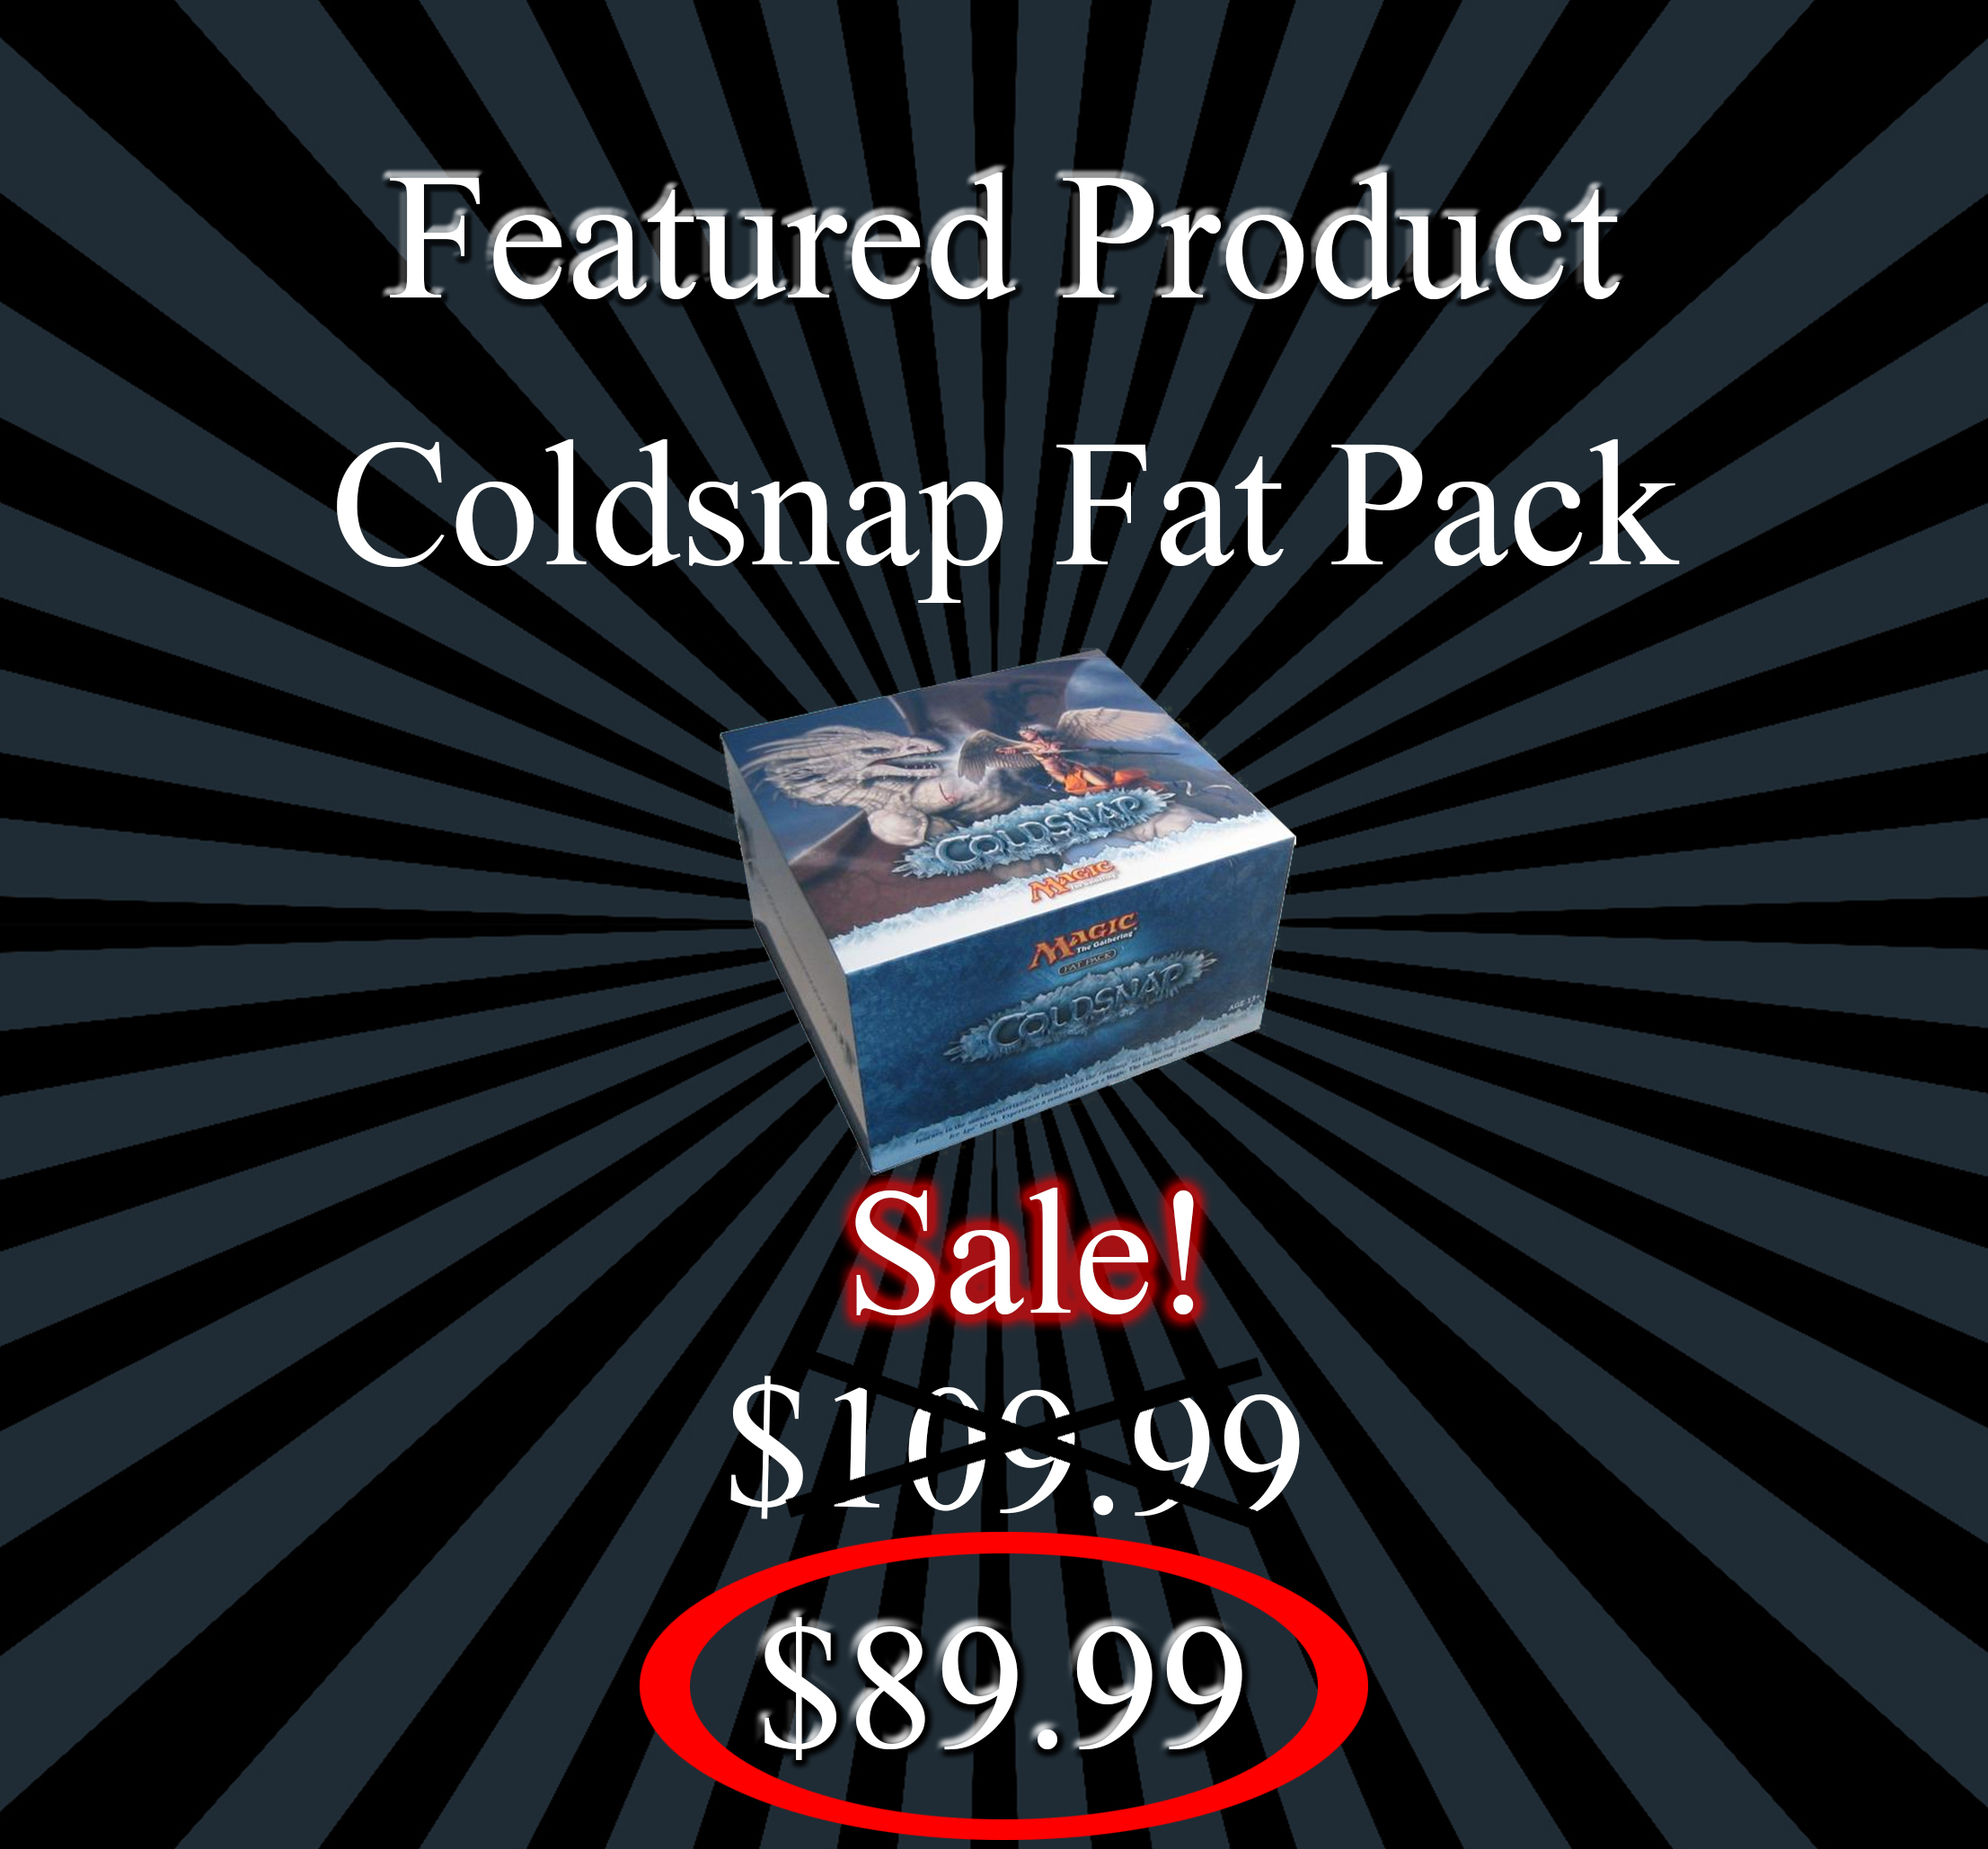 Coldsnap Fat Pack